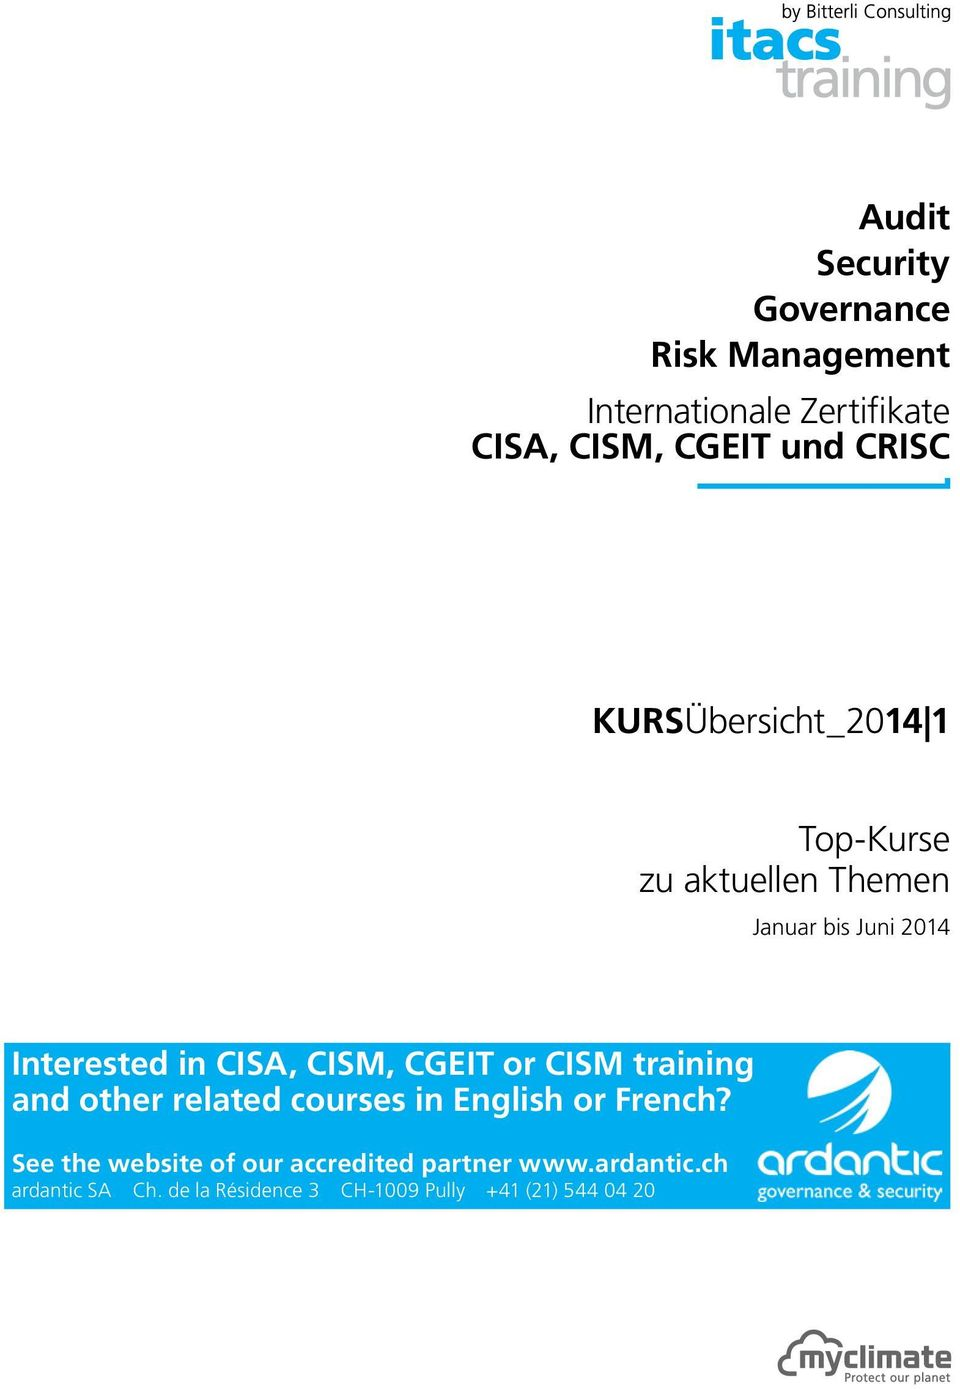 CISM training and other related courses in English or French?